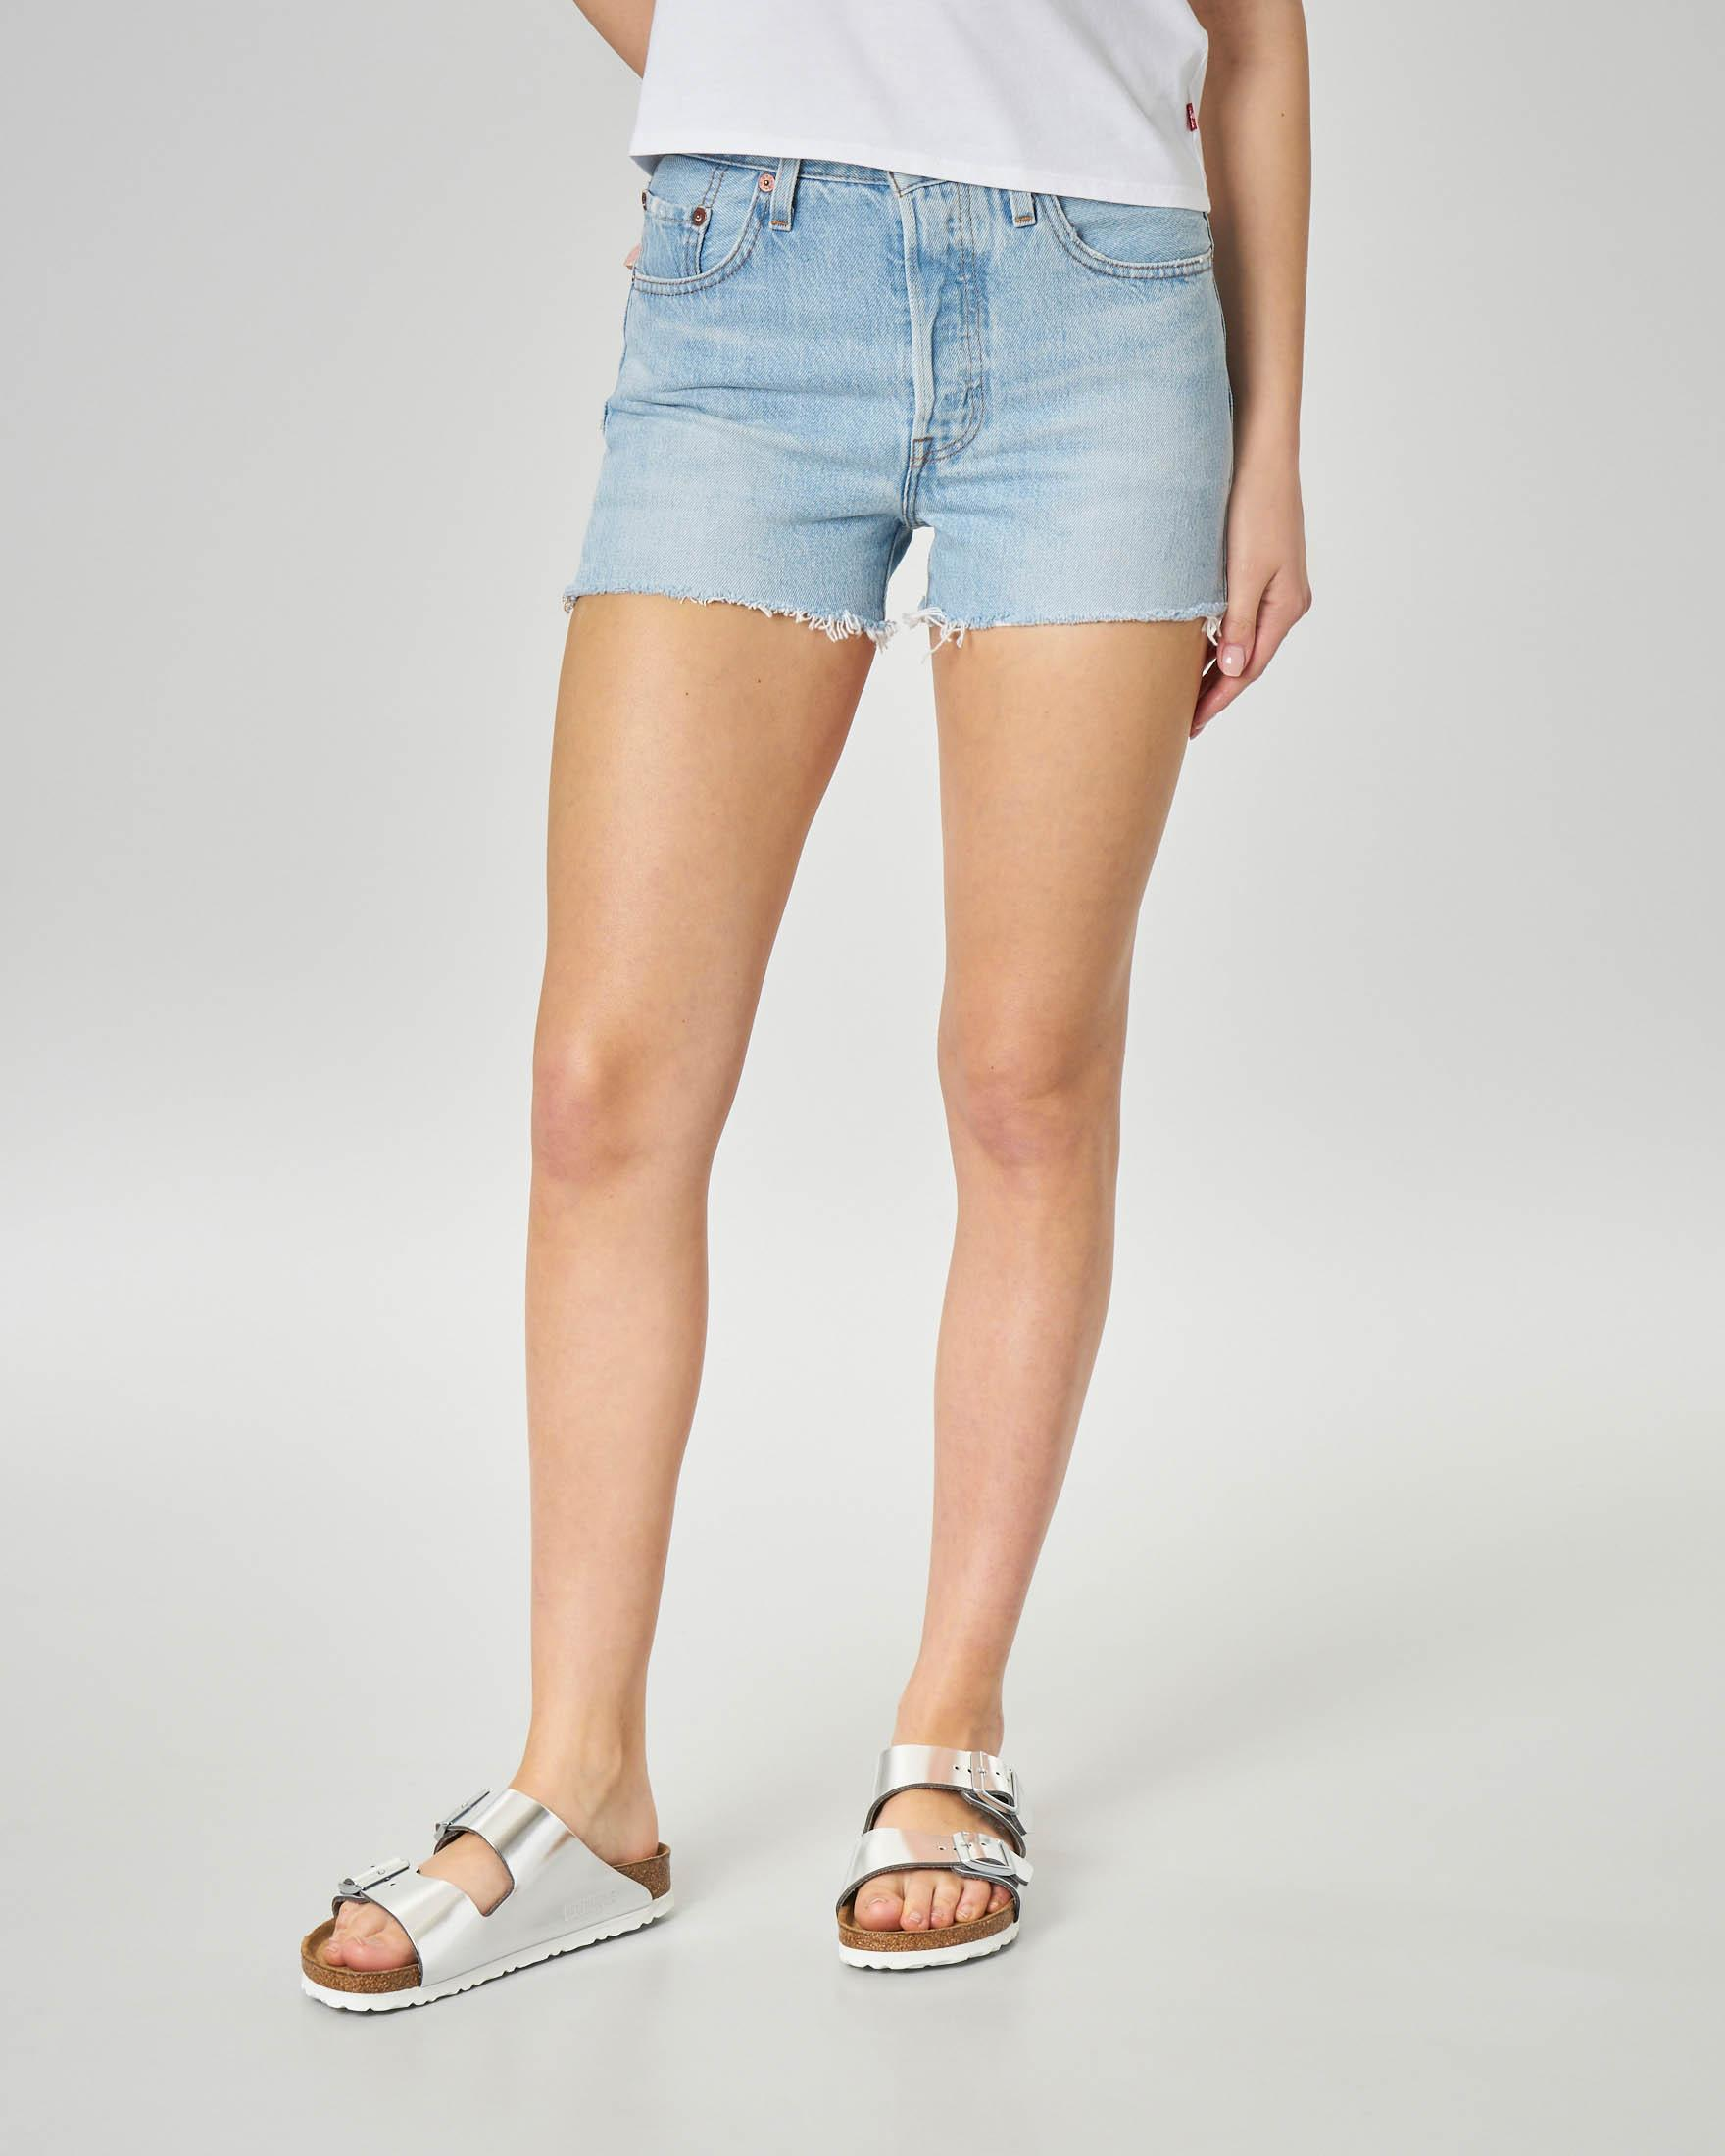 Shorts in denim blu dèlavè con orlo sfrangiato